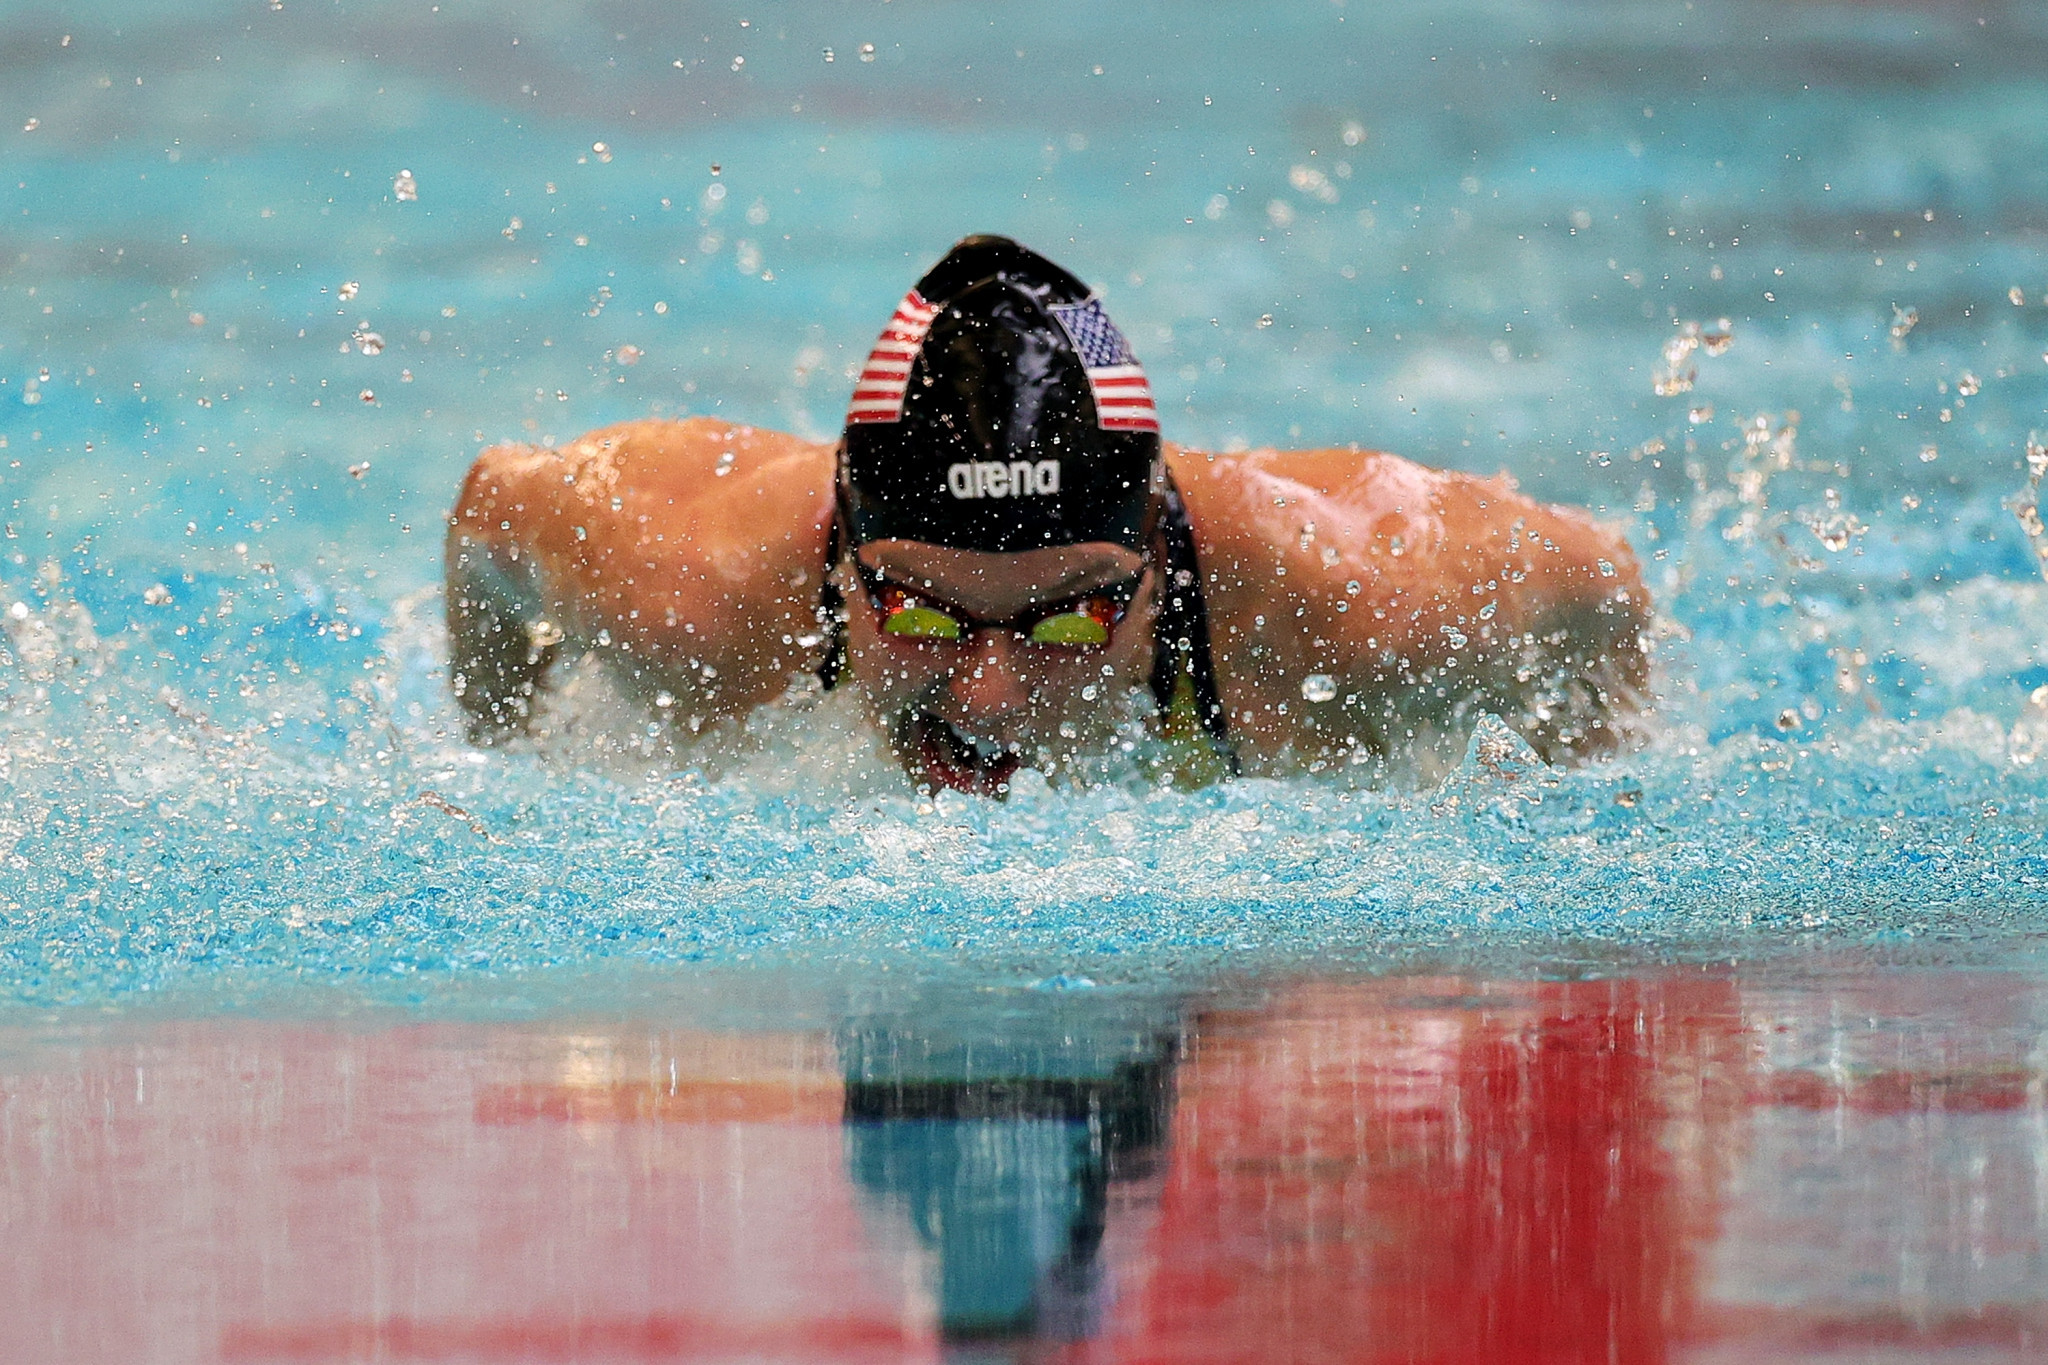 Jessica Long leads a 34-strong US Paralympic swimming team for Tokyo 2020 ©Getty Images